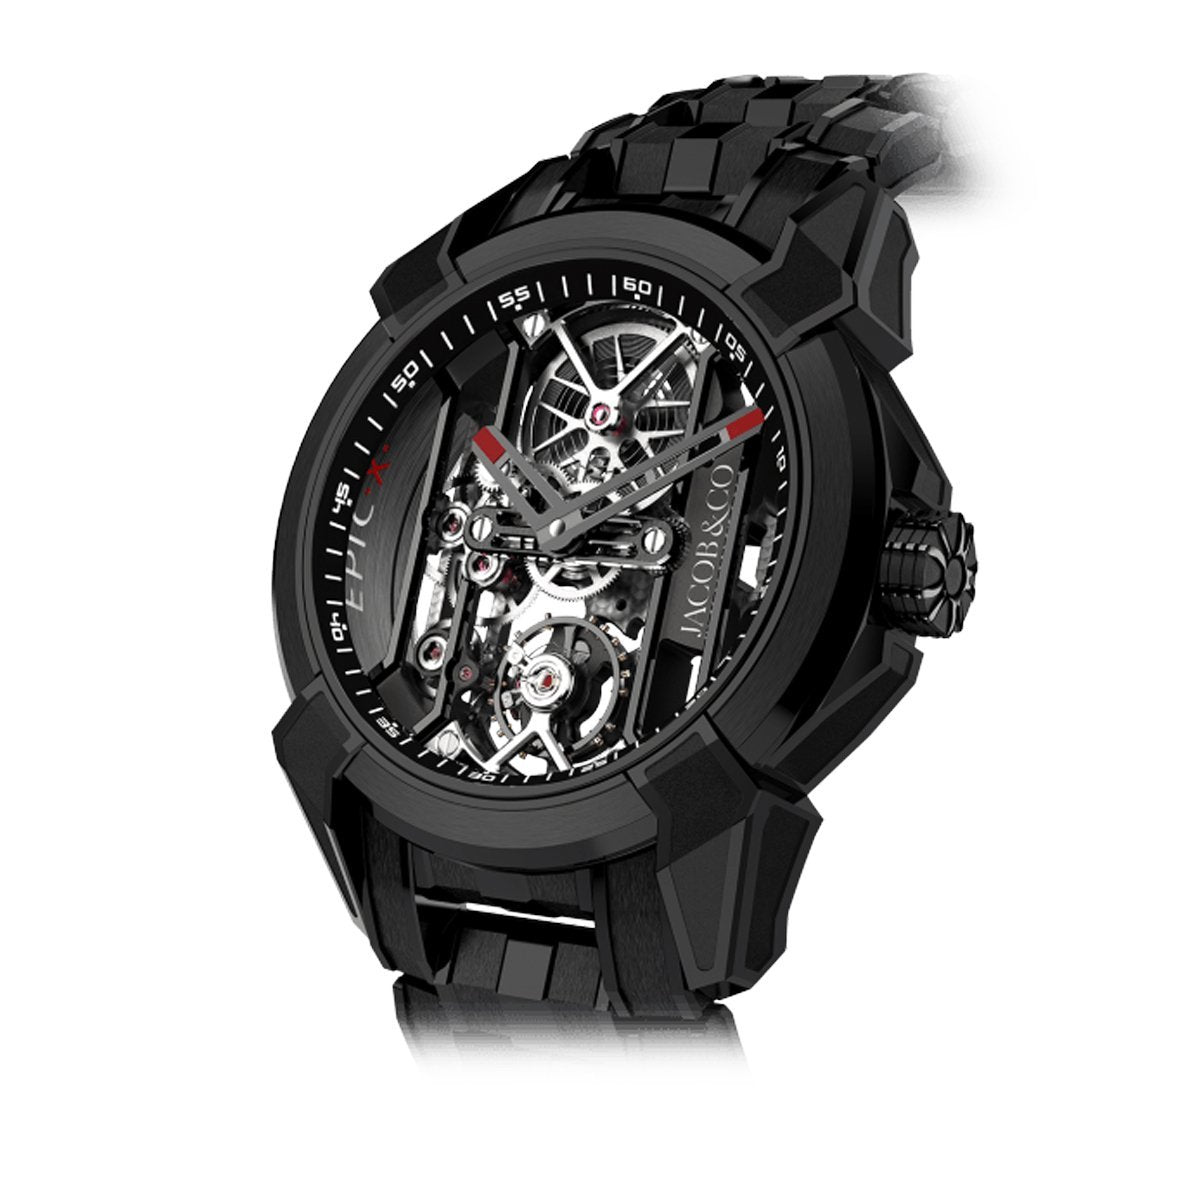 Jacob & Co. Epic X Skeleton Black DLC Bracelet Black - Watches & Crystals